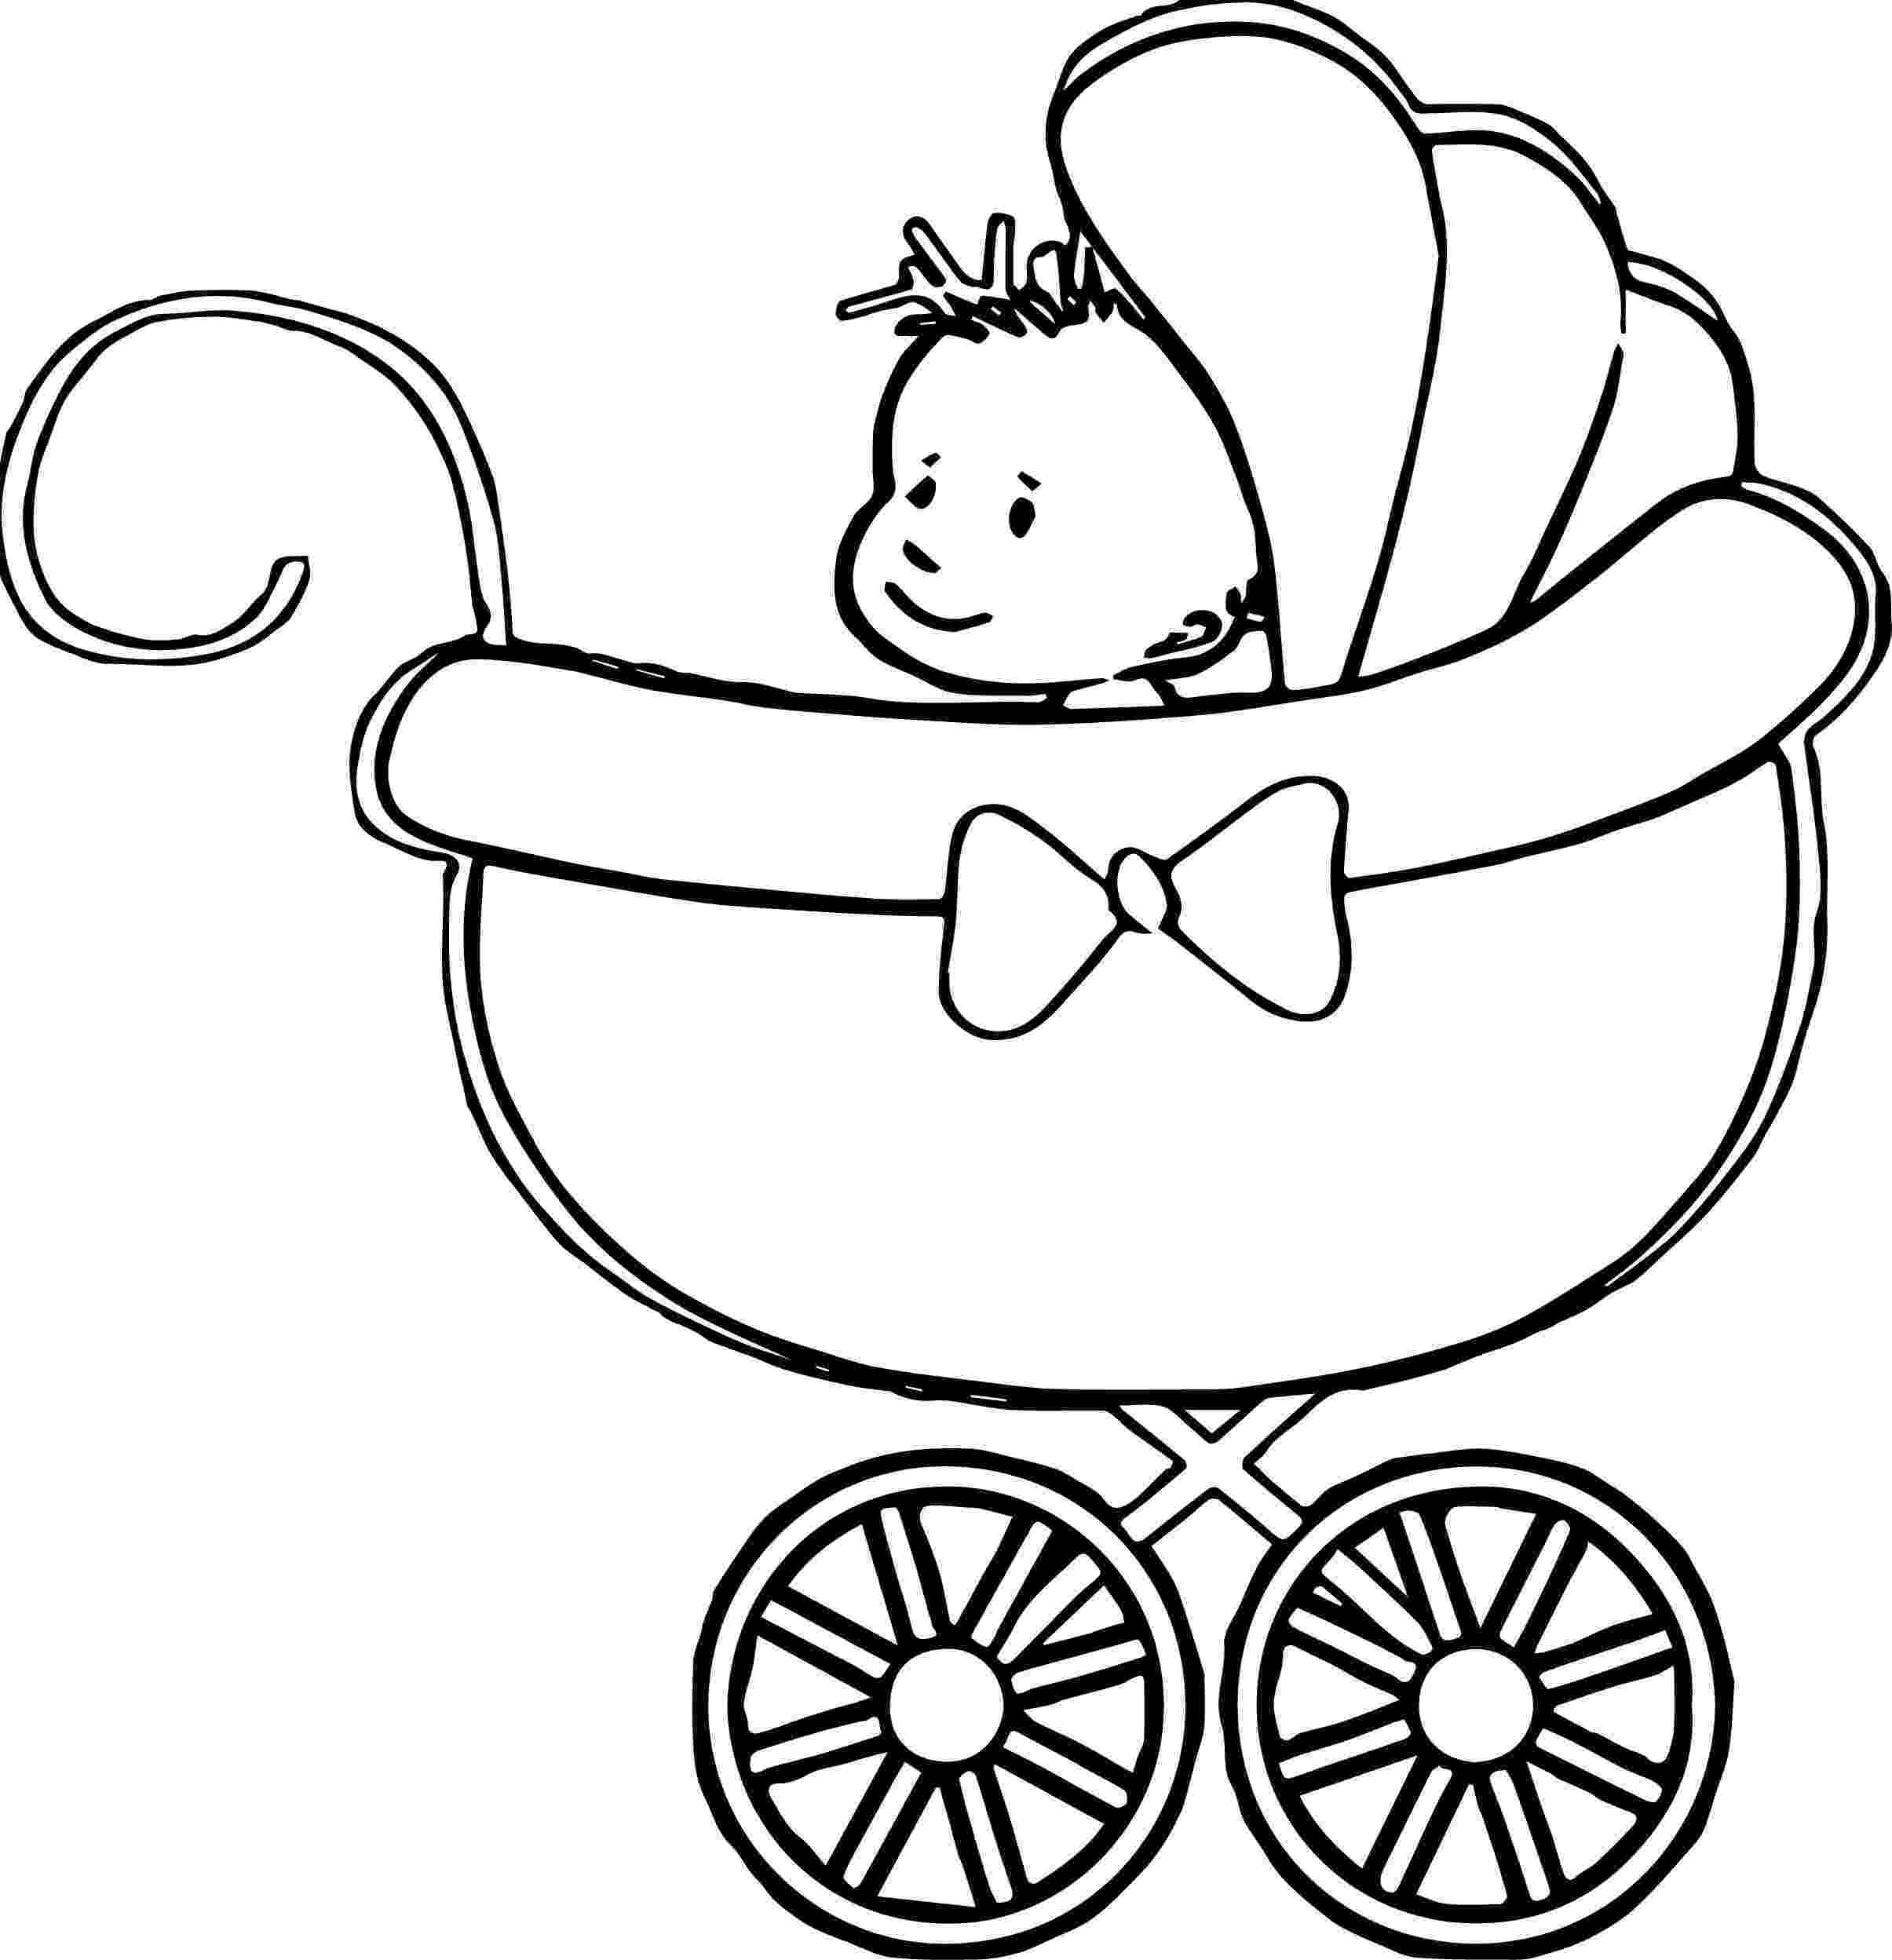 coloring pages of babies free printable baby coloring pages for kids babies coloring pages of